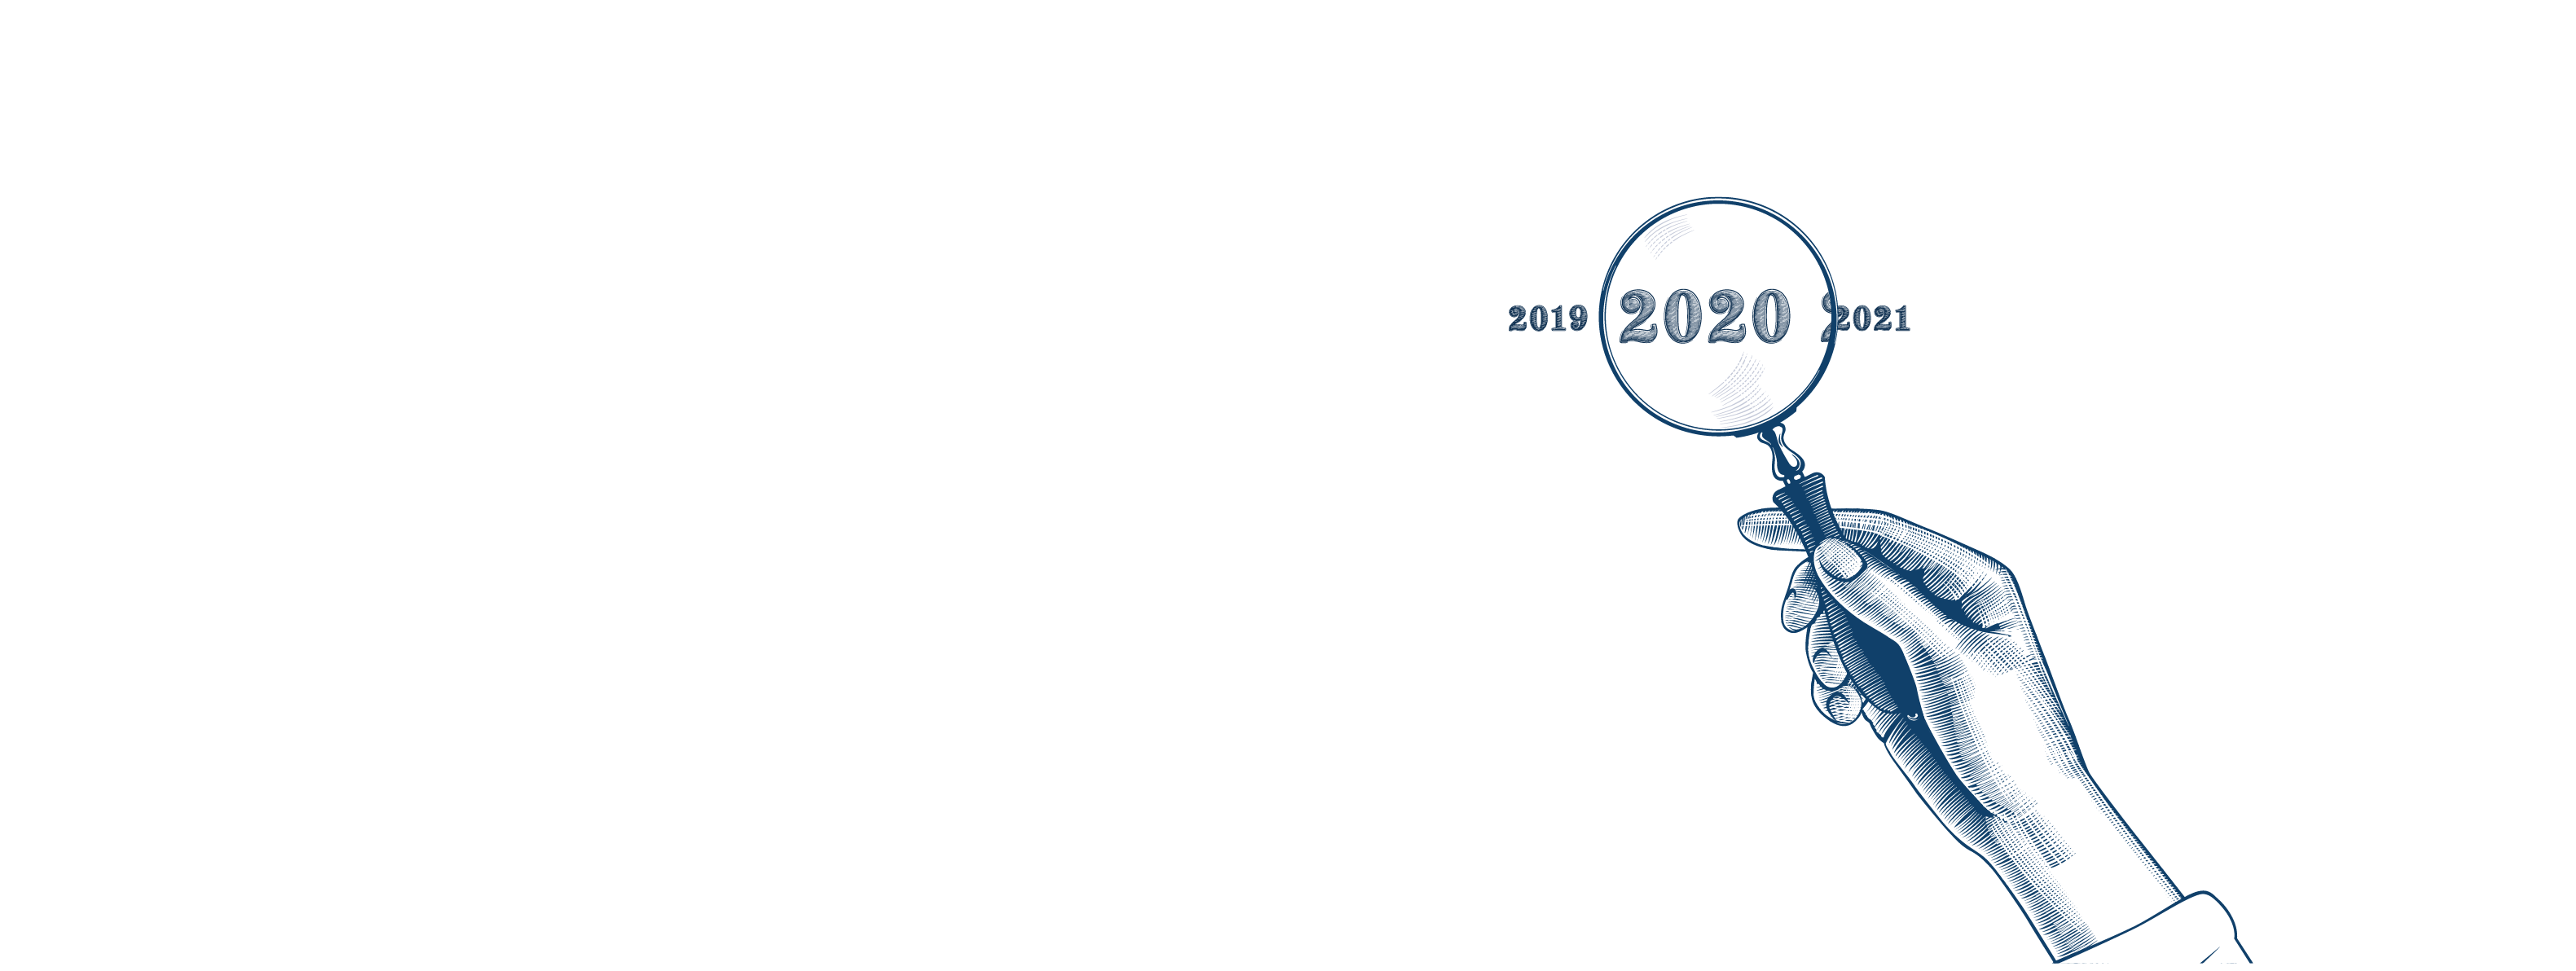 2020 Reflections: Looking Back to Move Forward